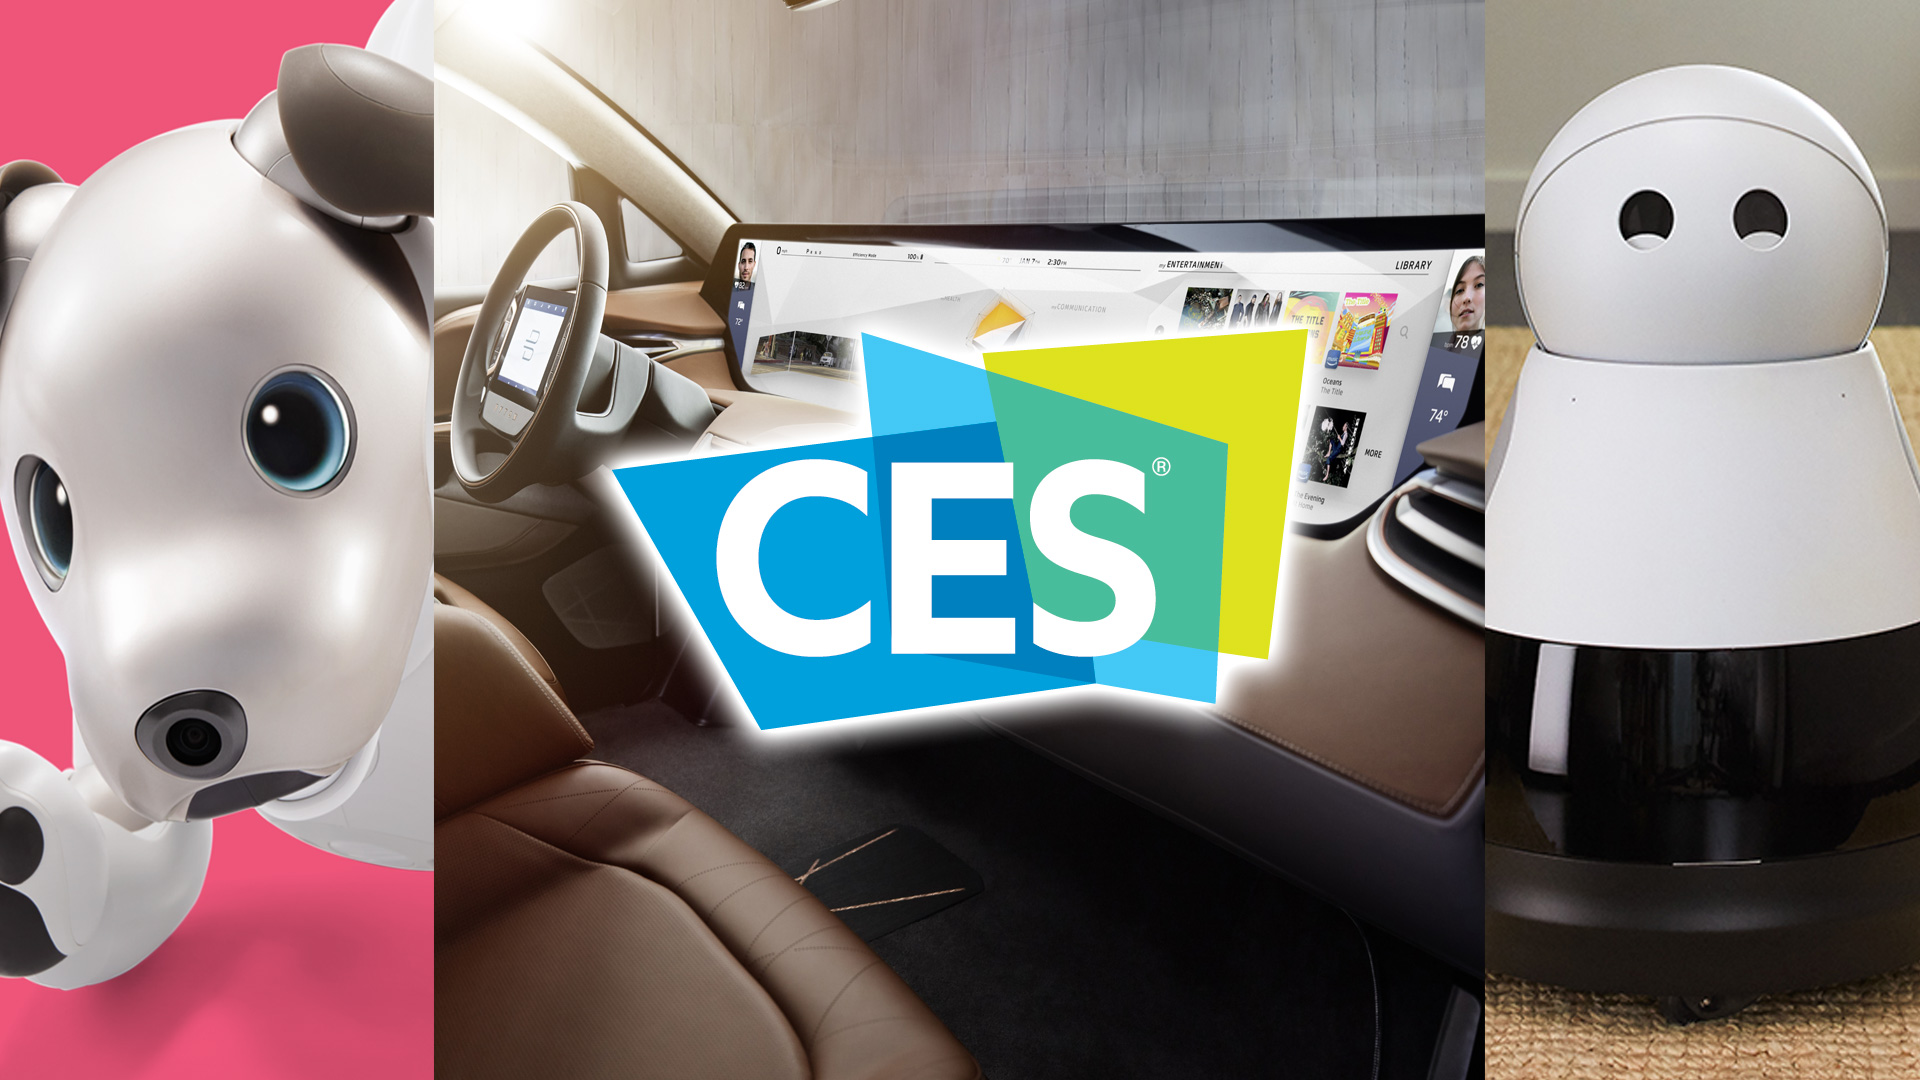 CES 2018 Roundup: Robot Companions, Modular TVs, and Our Voice-Assisted Future